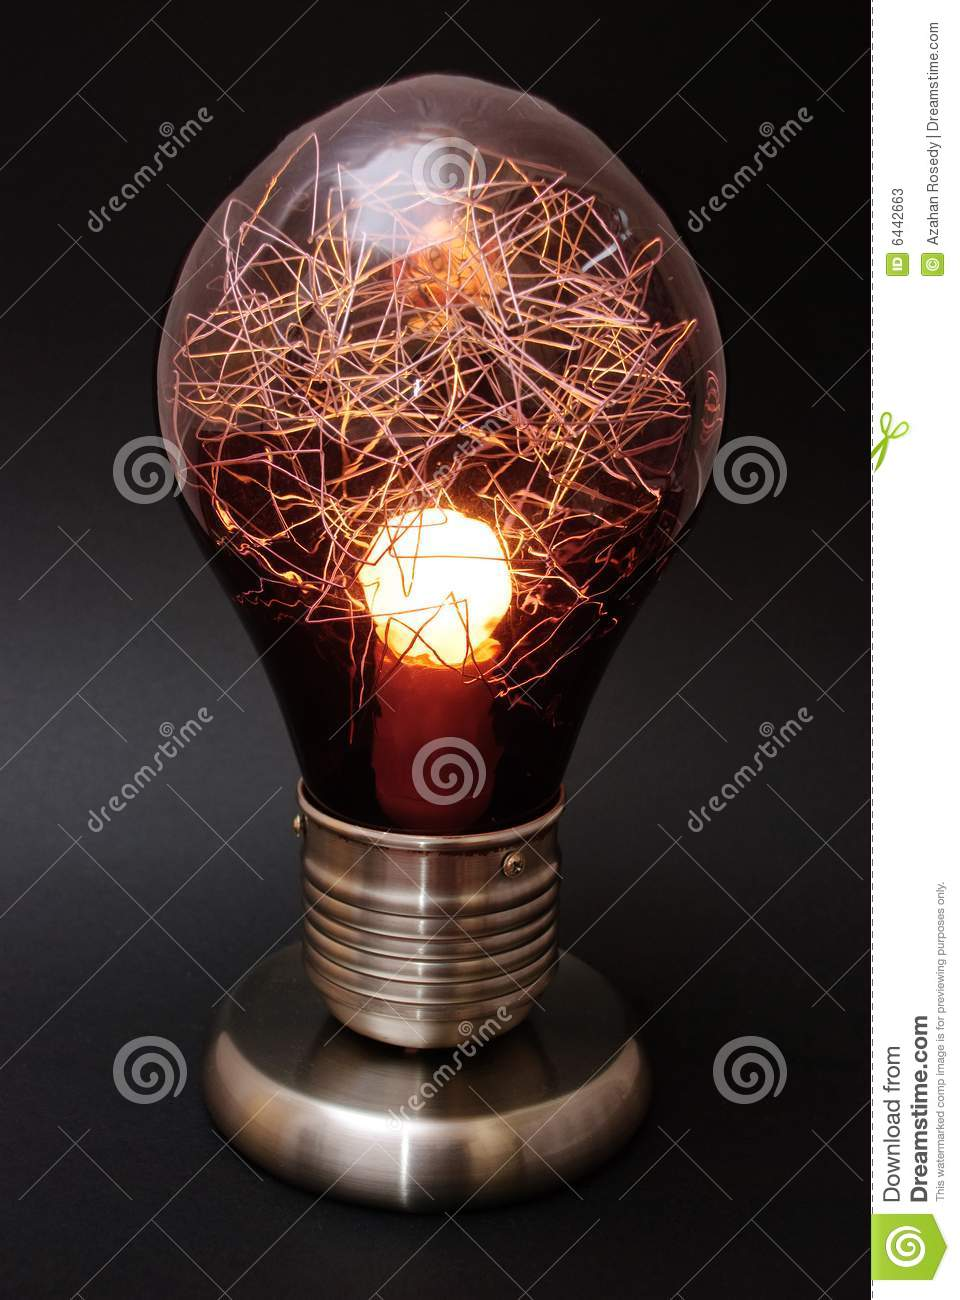 Decorative Light Bulb Lamp Stock Photos - Image: 6442663